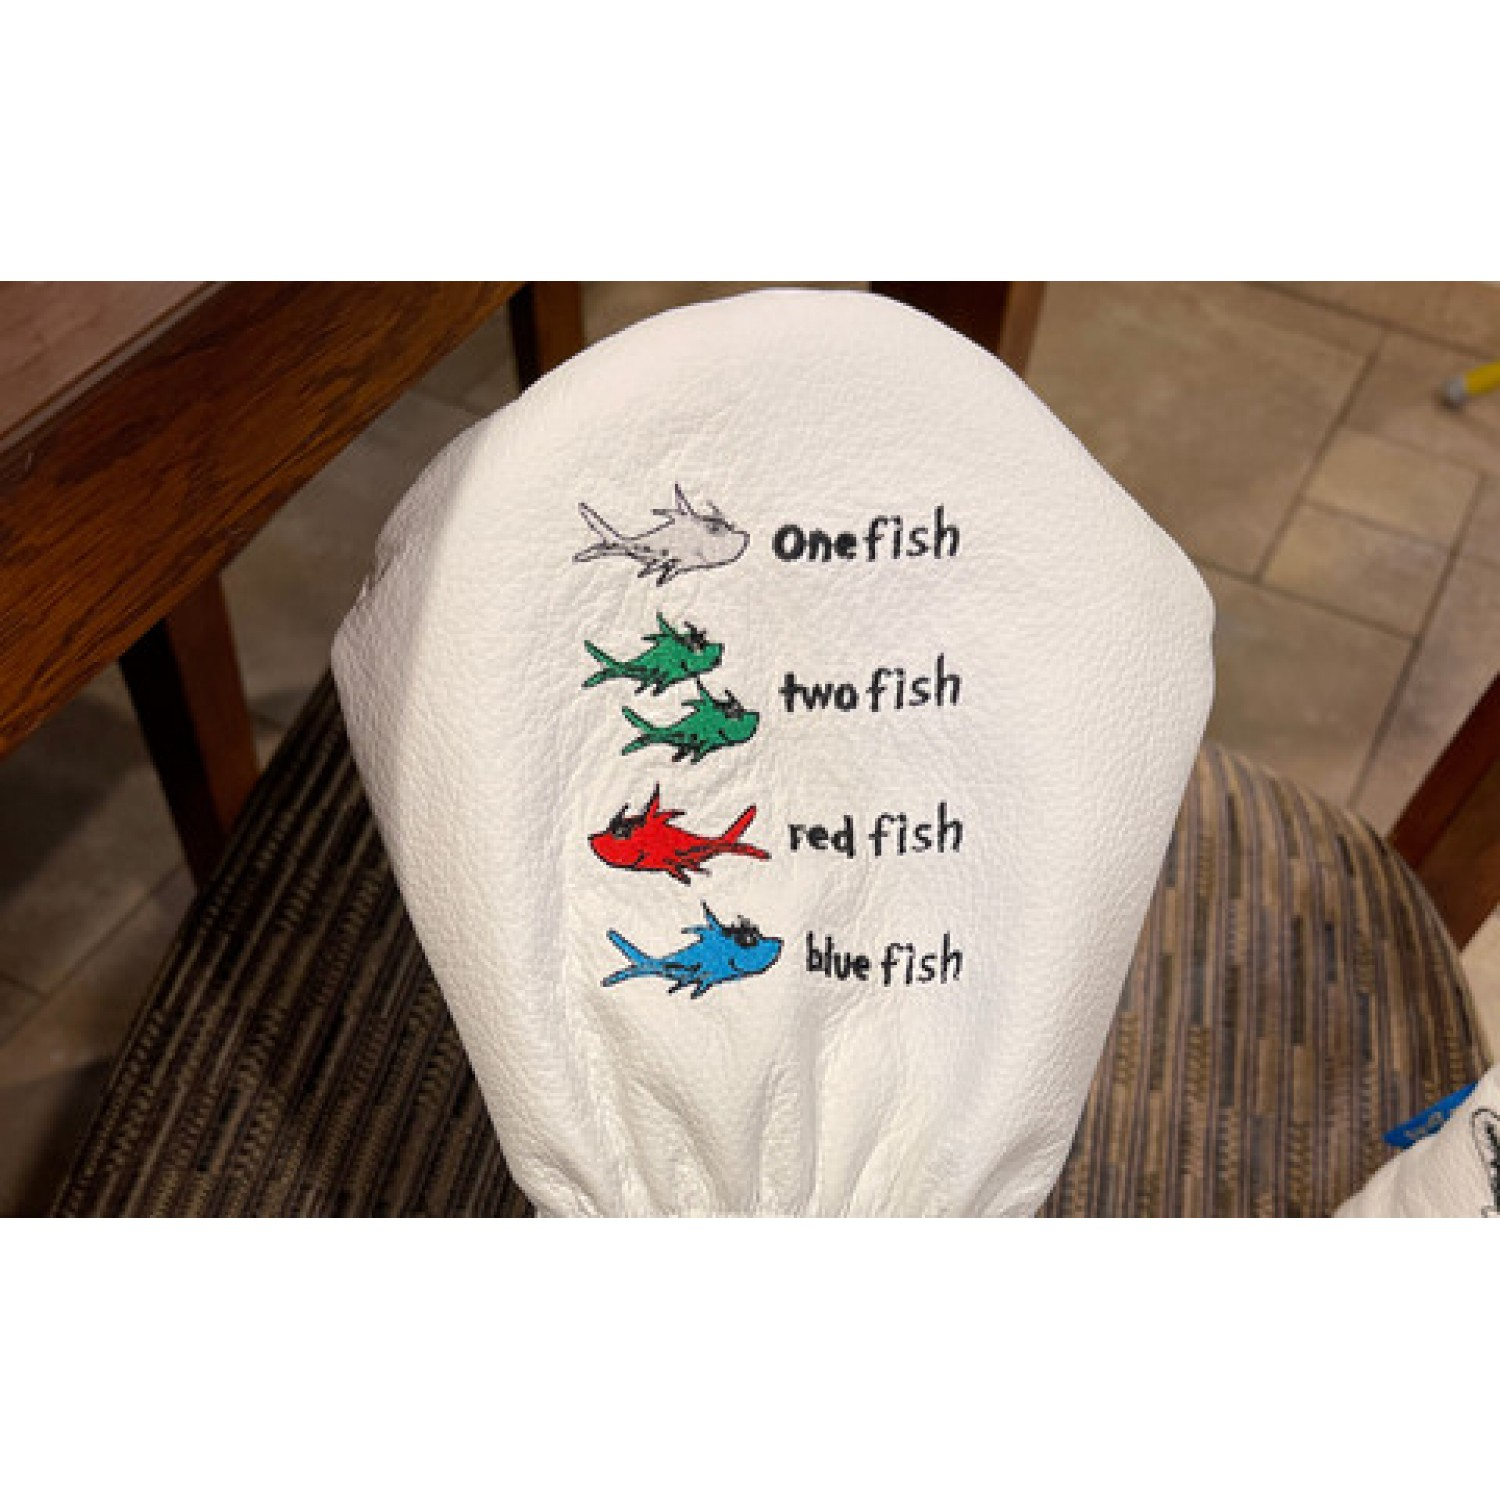 One fish two fish Design Embroidery